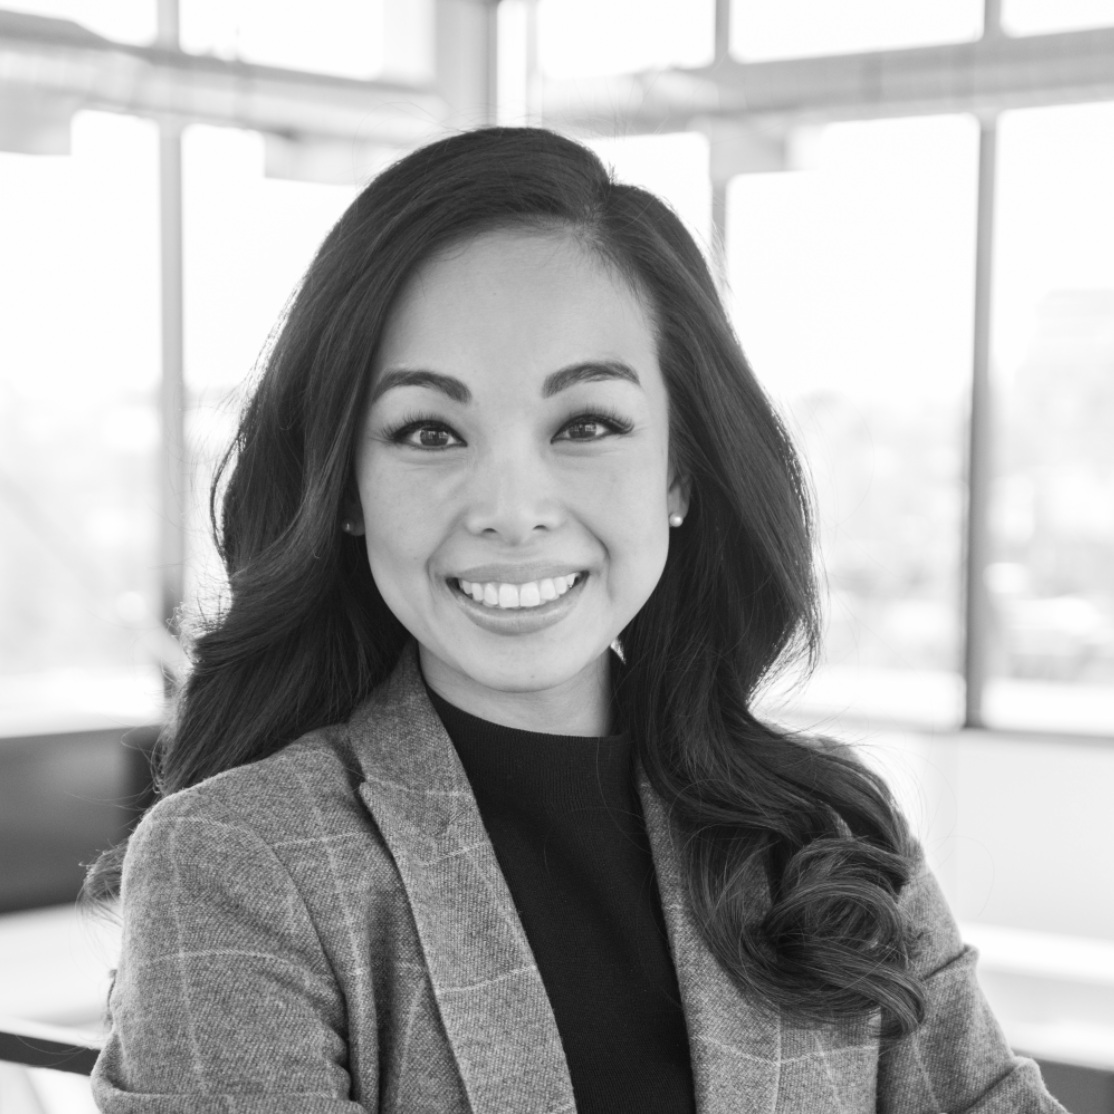 Trang Trinh CPA, CA  — CEO & Founding Director  A recognized strategy and operations leader with 10+ years of experience. Completed 10+ transactions ranging between $1 million to $14 billion during her consulting career at Deloitte, leading the cannabis sector with an M&A lens. Trang brings vision, deep relationships in the sector, mentorship and kindness to her role in leading TREC Brands.